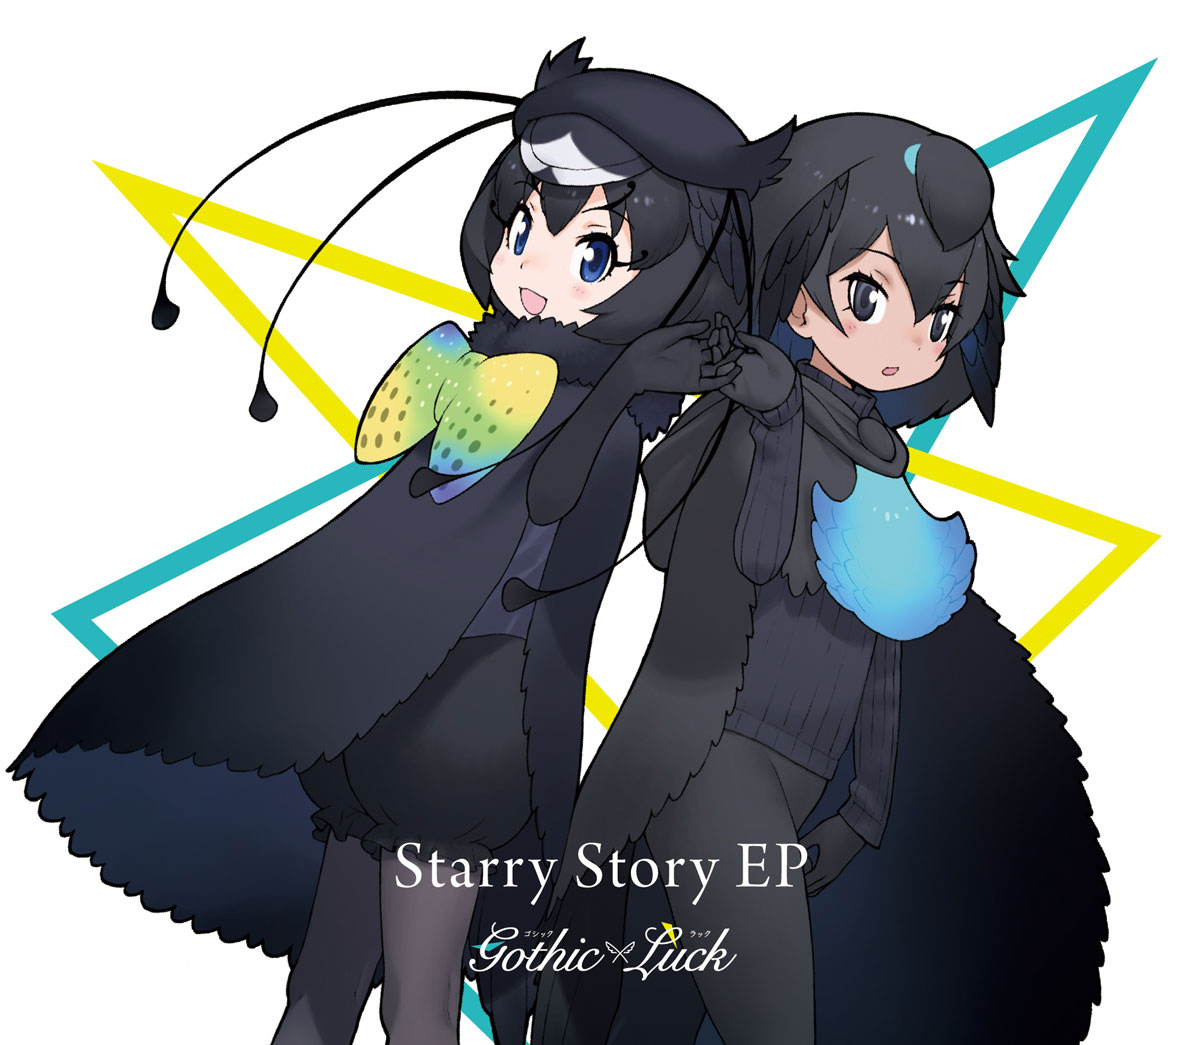 Gothic×Luck「Starry Story EP」けものフレンズ盤